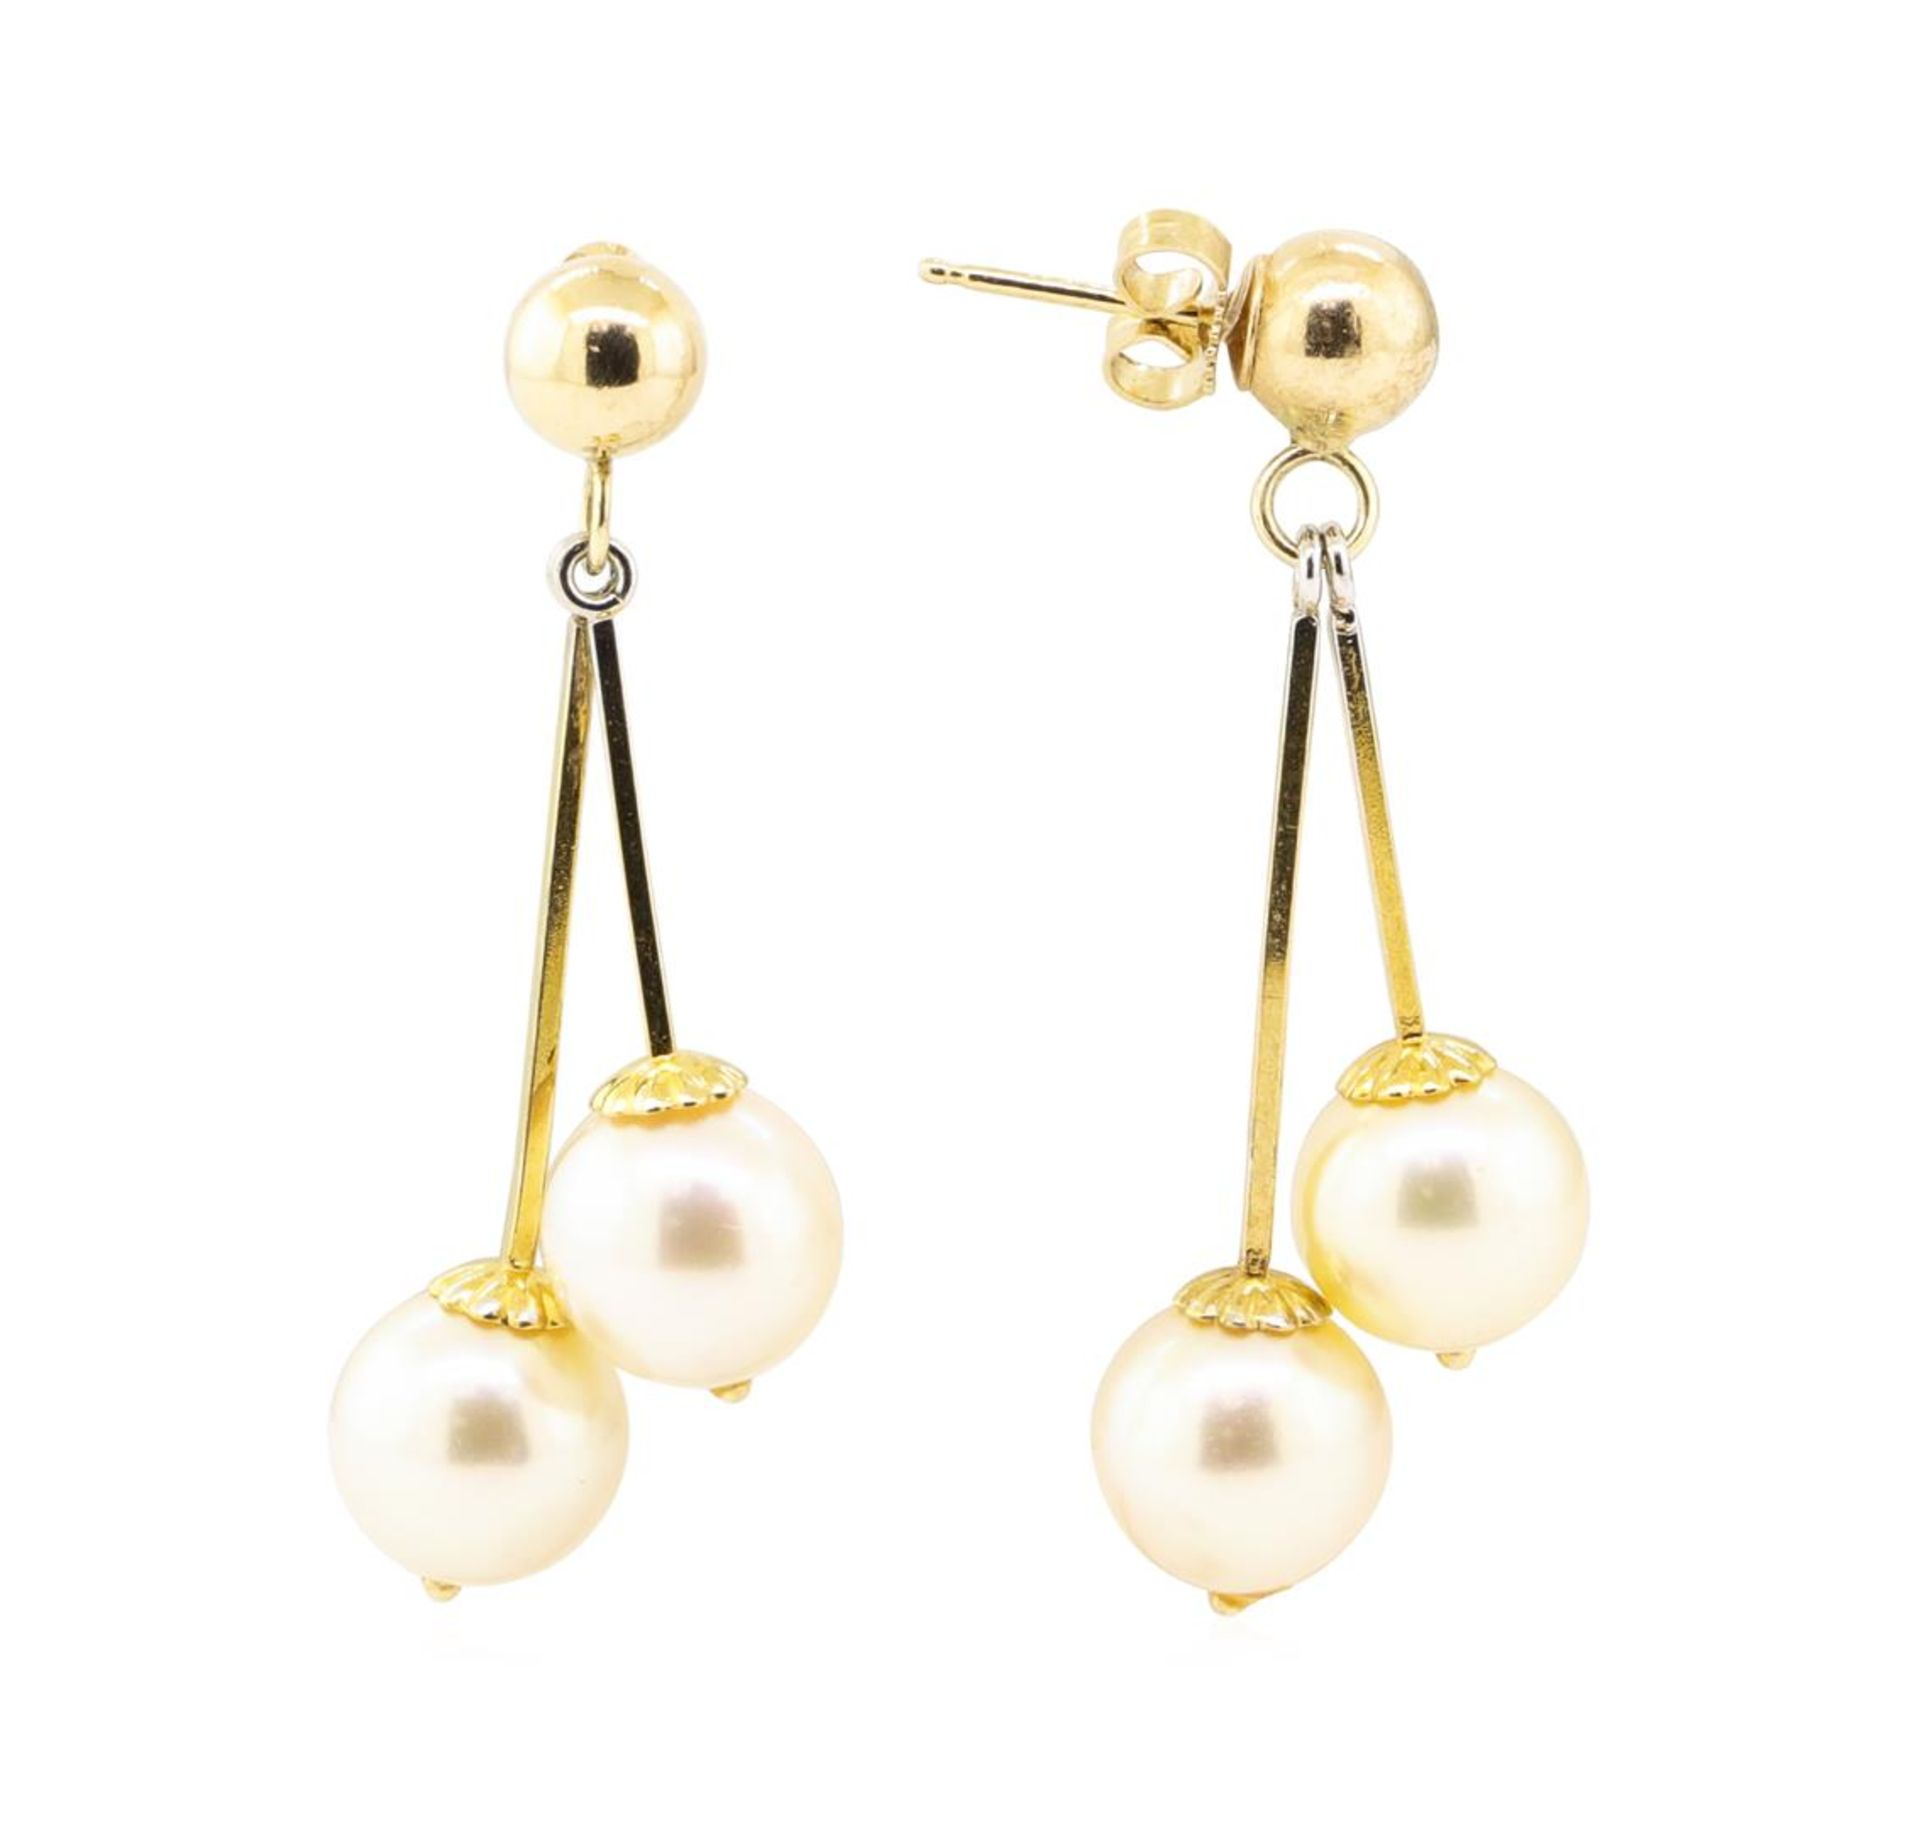 Pearl Double Dangle Earrings - 14KT Yellow Gold - Image 2 of 2